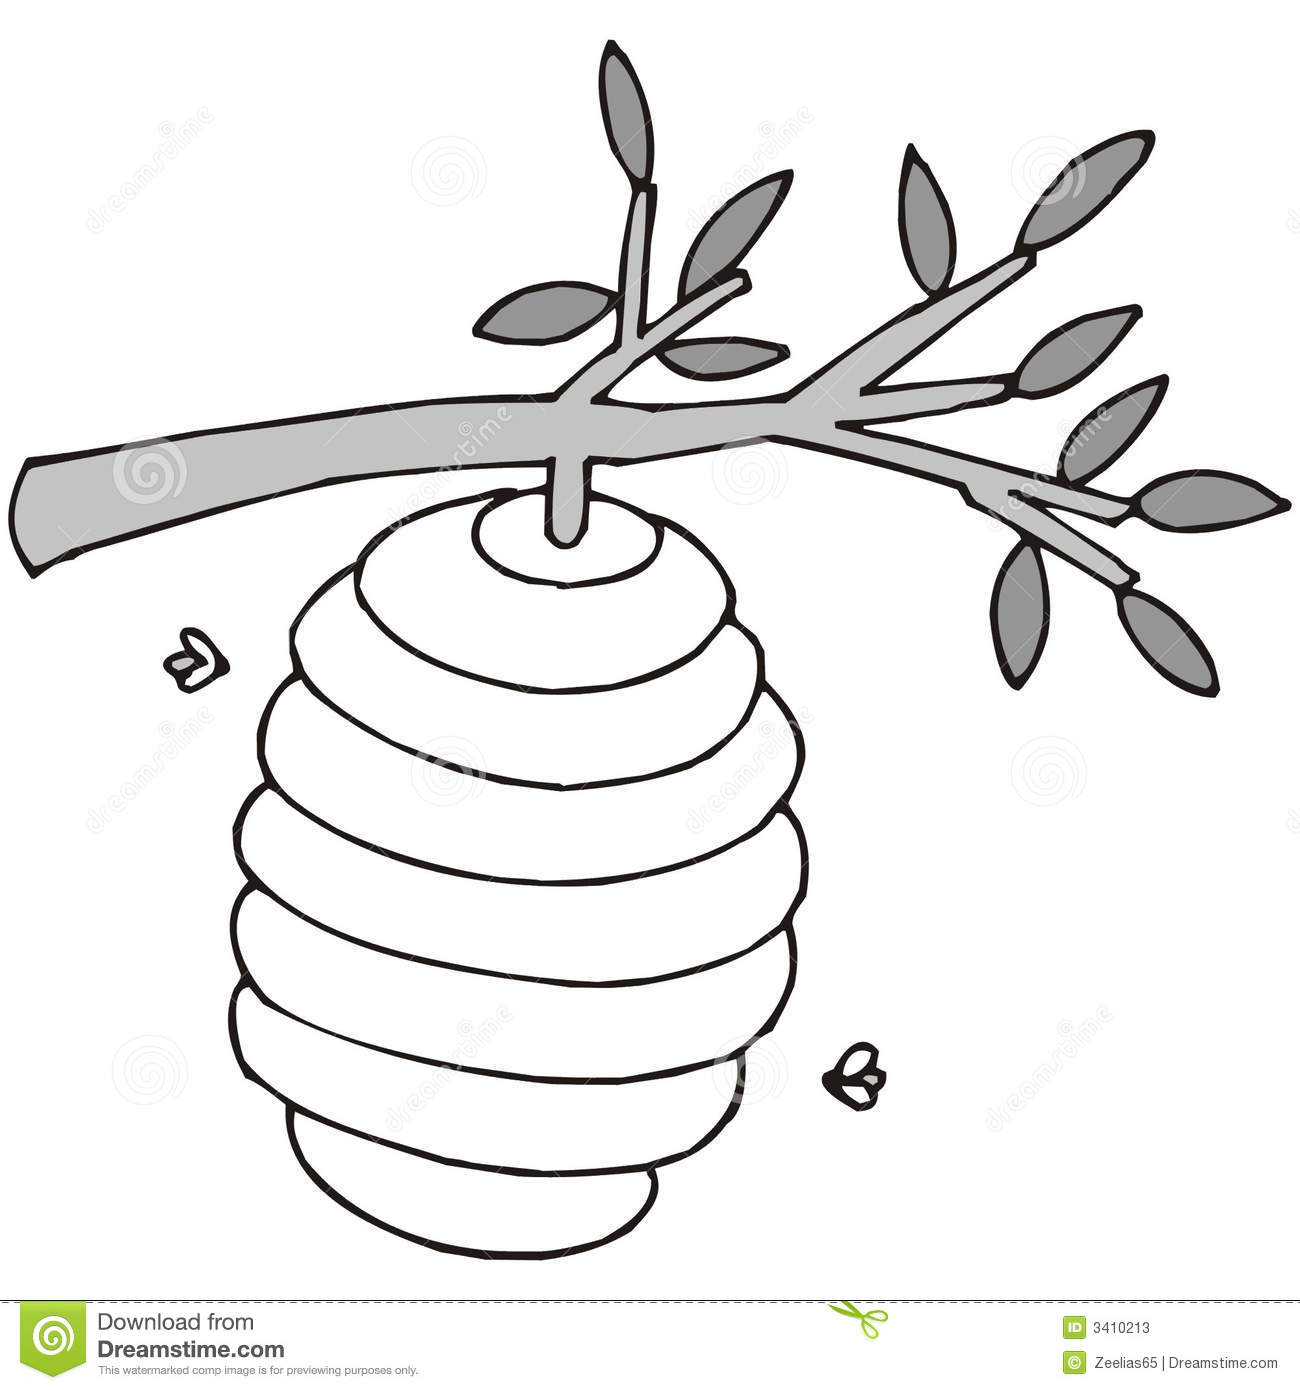 Art Illustration In Black And White A Beehive